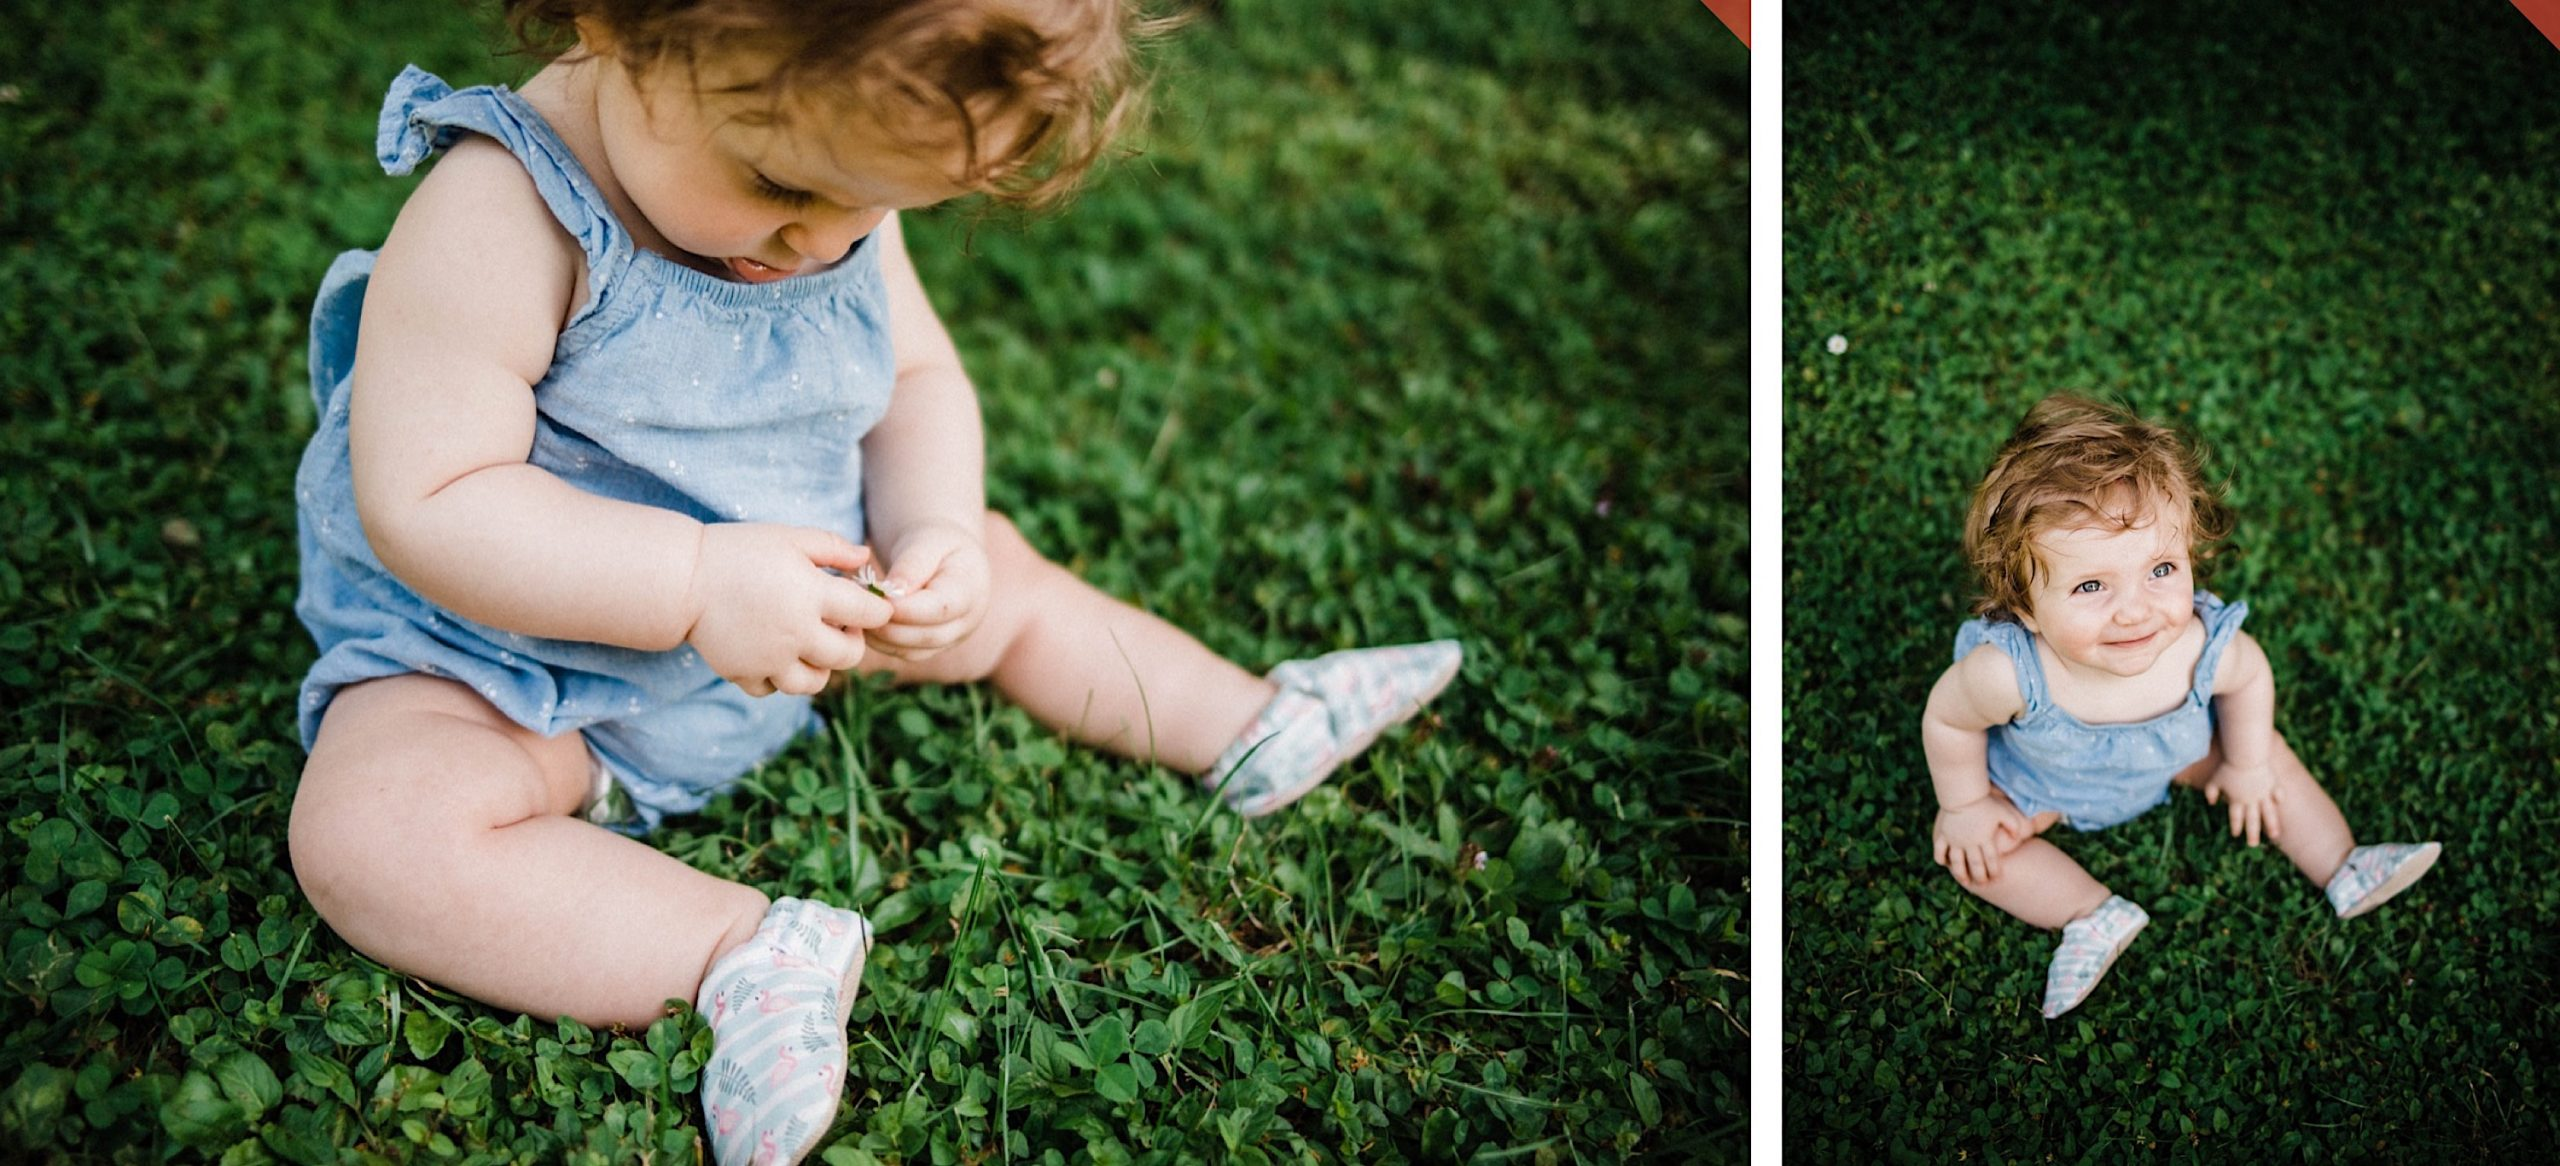 Relaxed Family Portraits of a little girl playing with a daisy at a park.